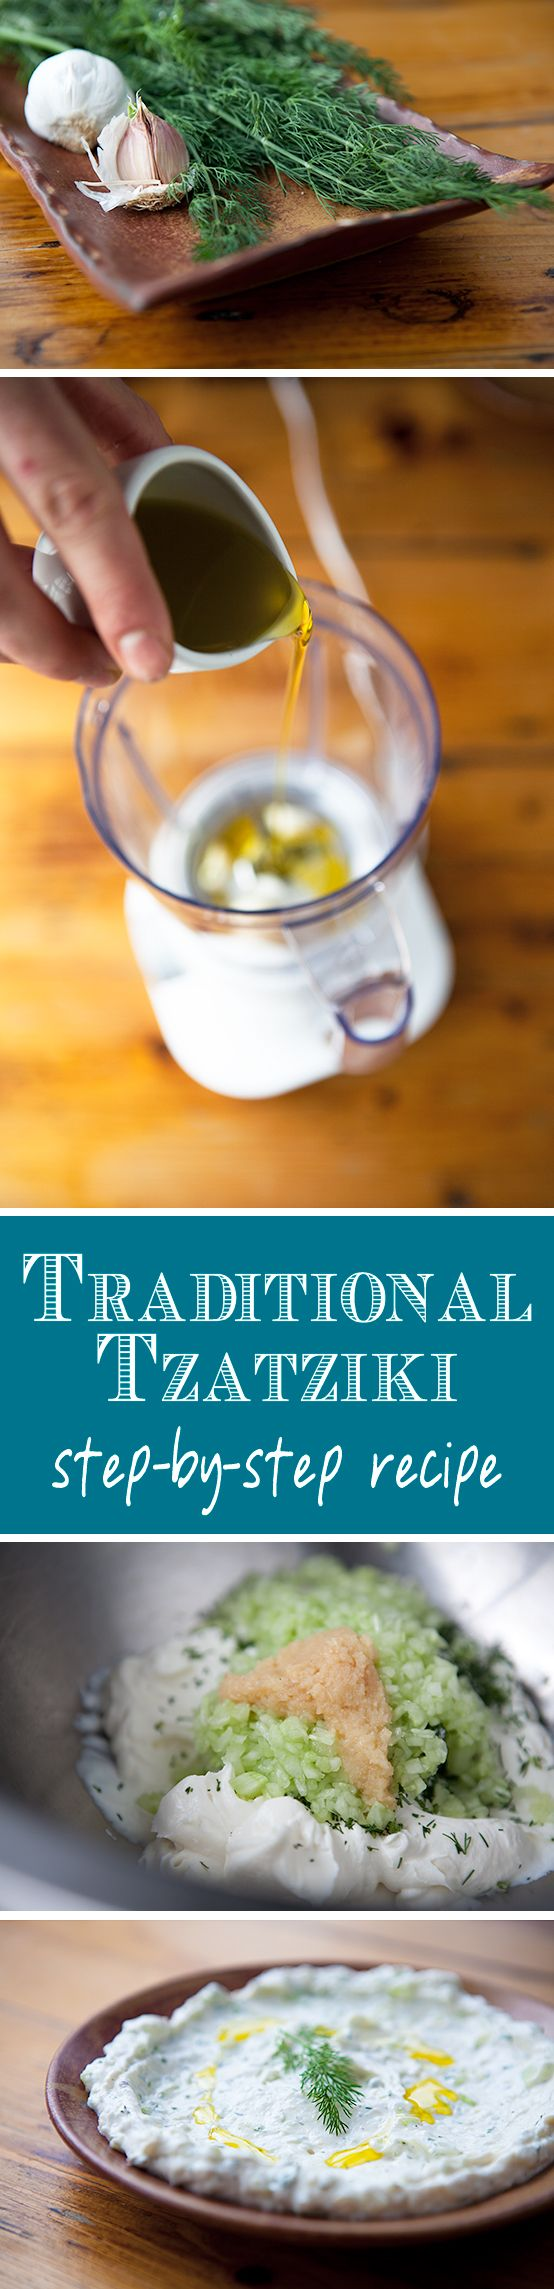 Pinner: Did you know that Tzatziki is traditionally mixed by hand? Learn more about this perfect Greek summer dip.